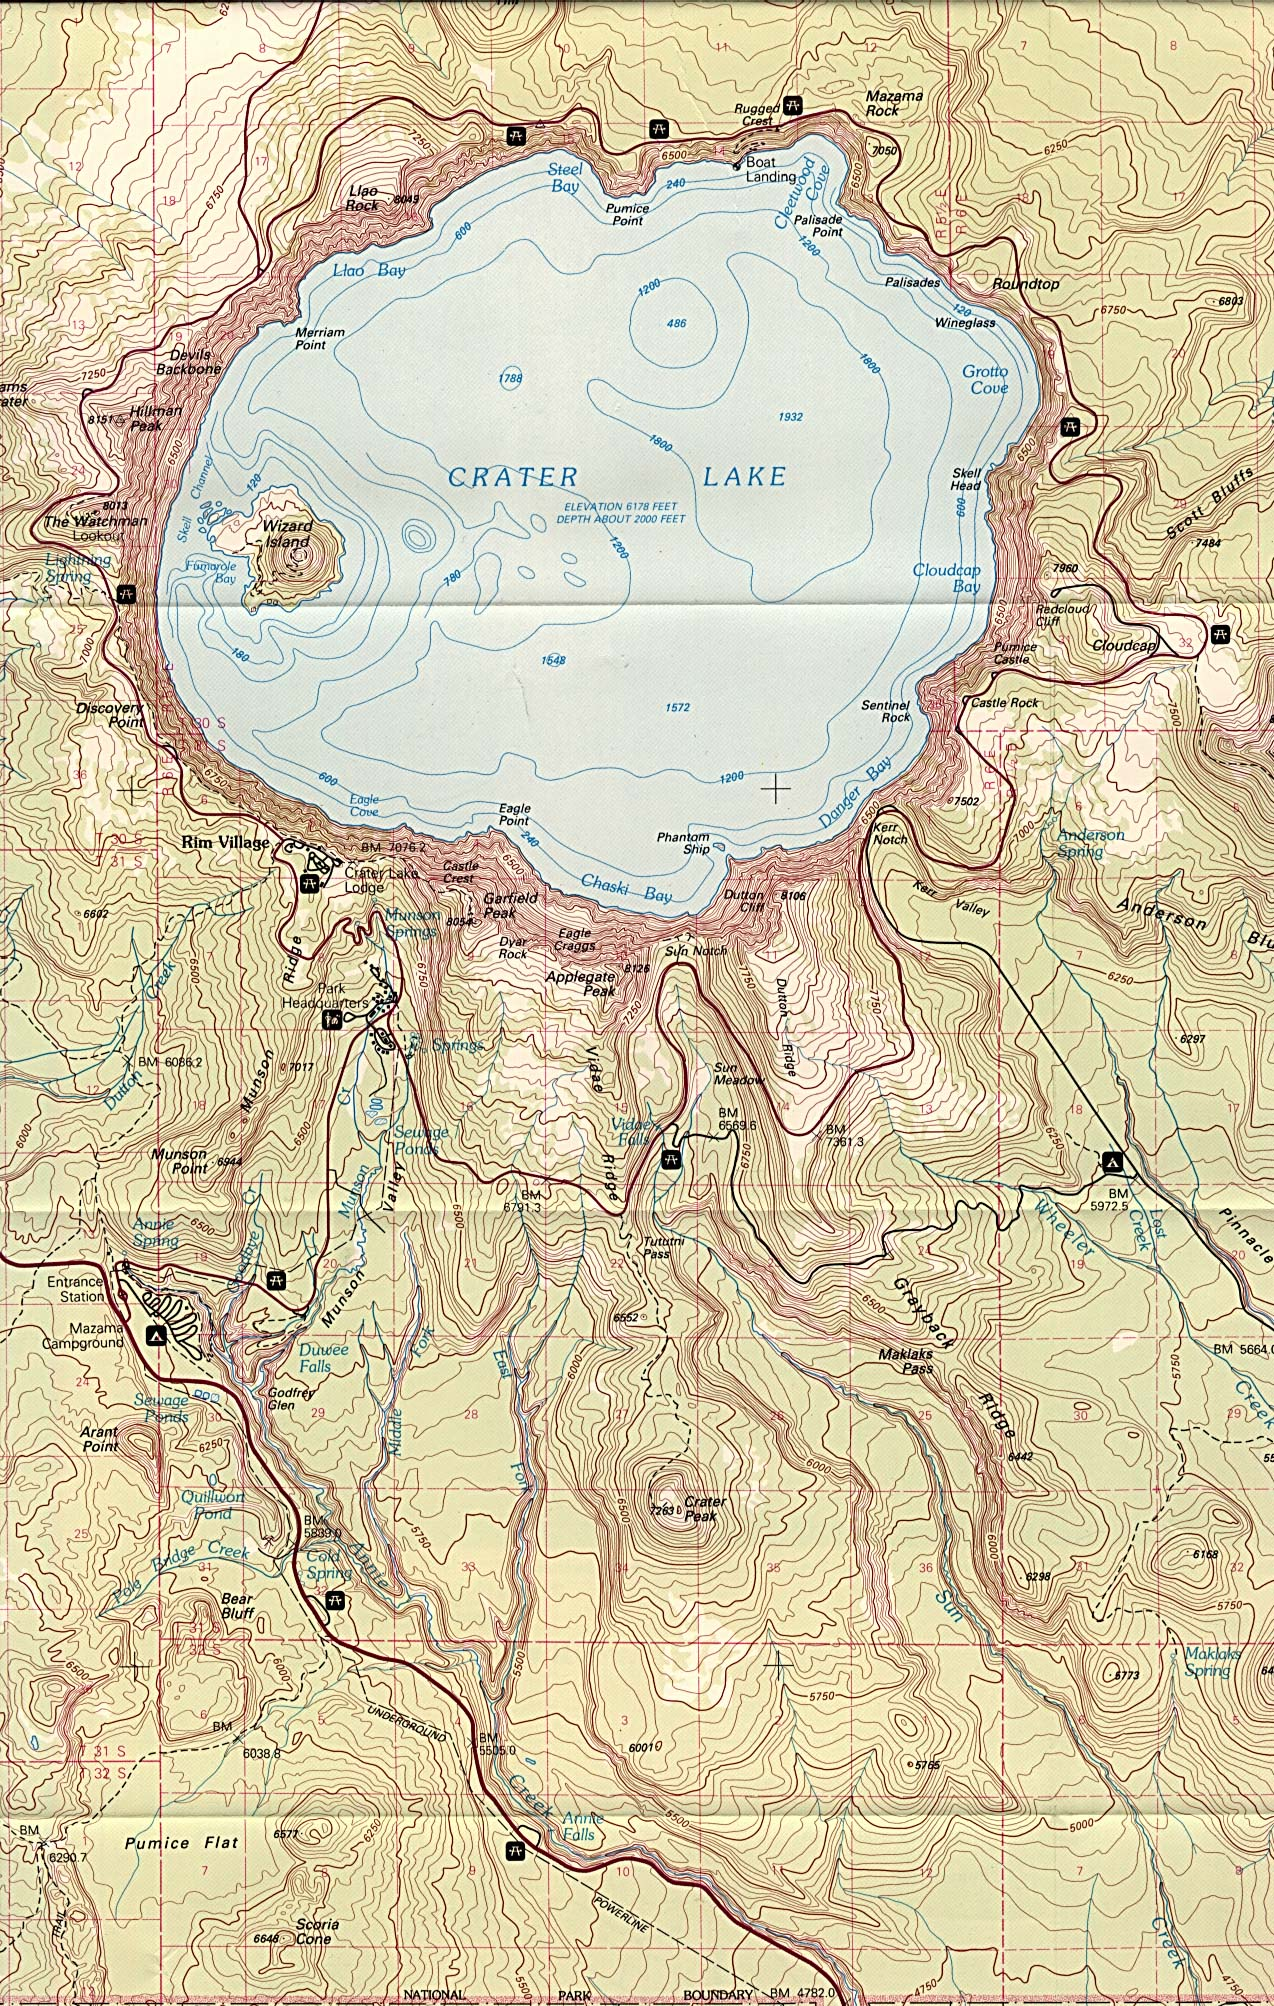 Crater Lake National Park Map, Oregon, United States